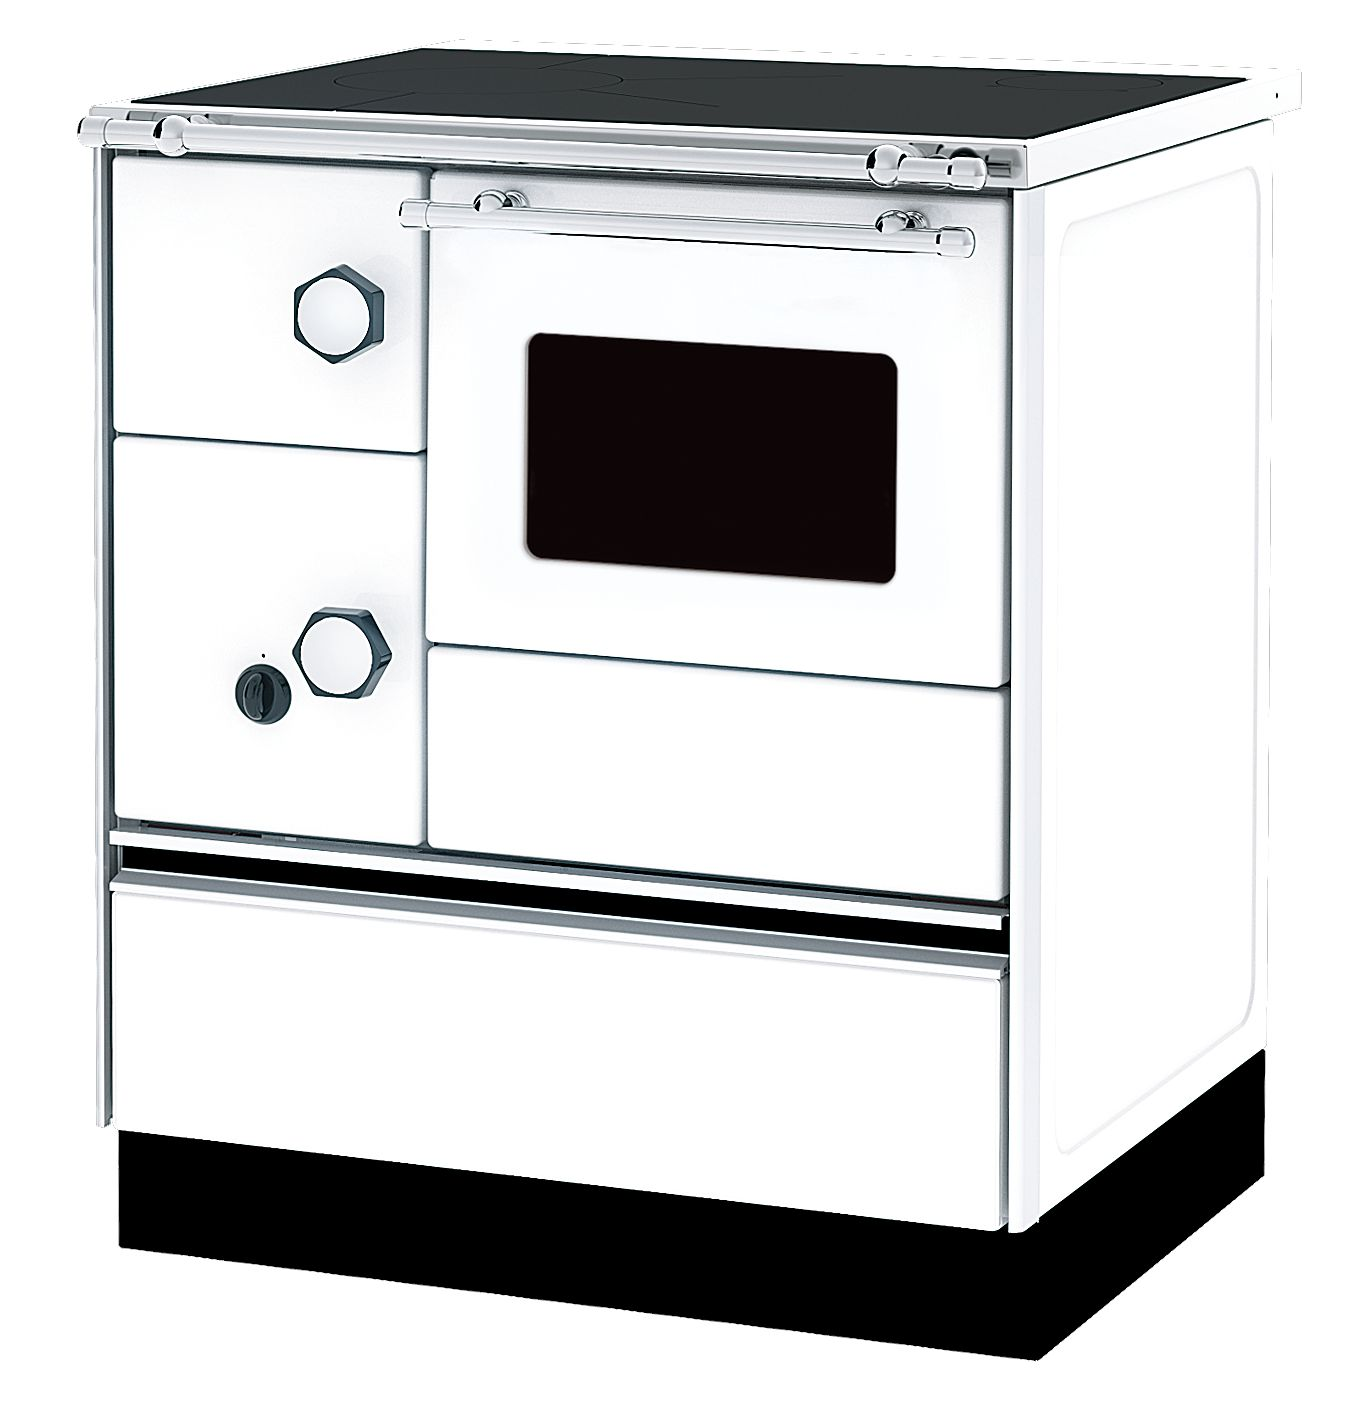 Woodburning cooker Alfa 70 white righthanded 6kW